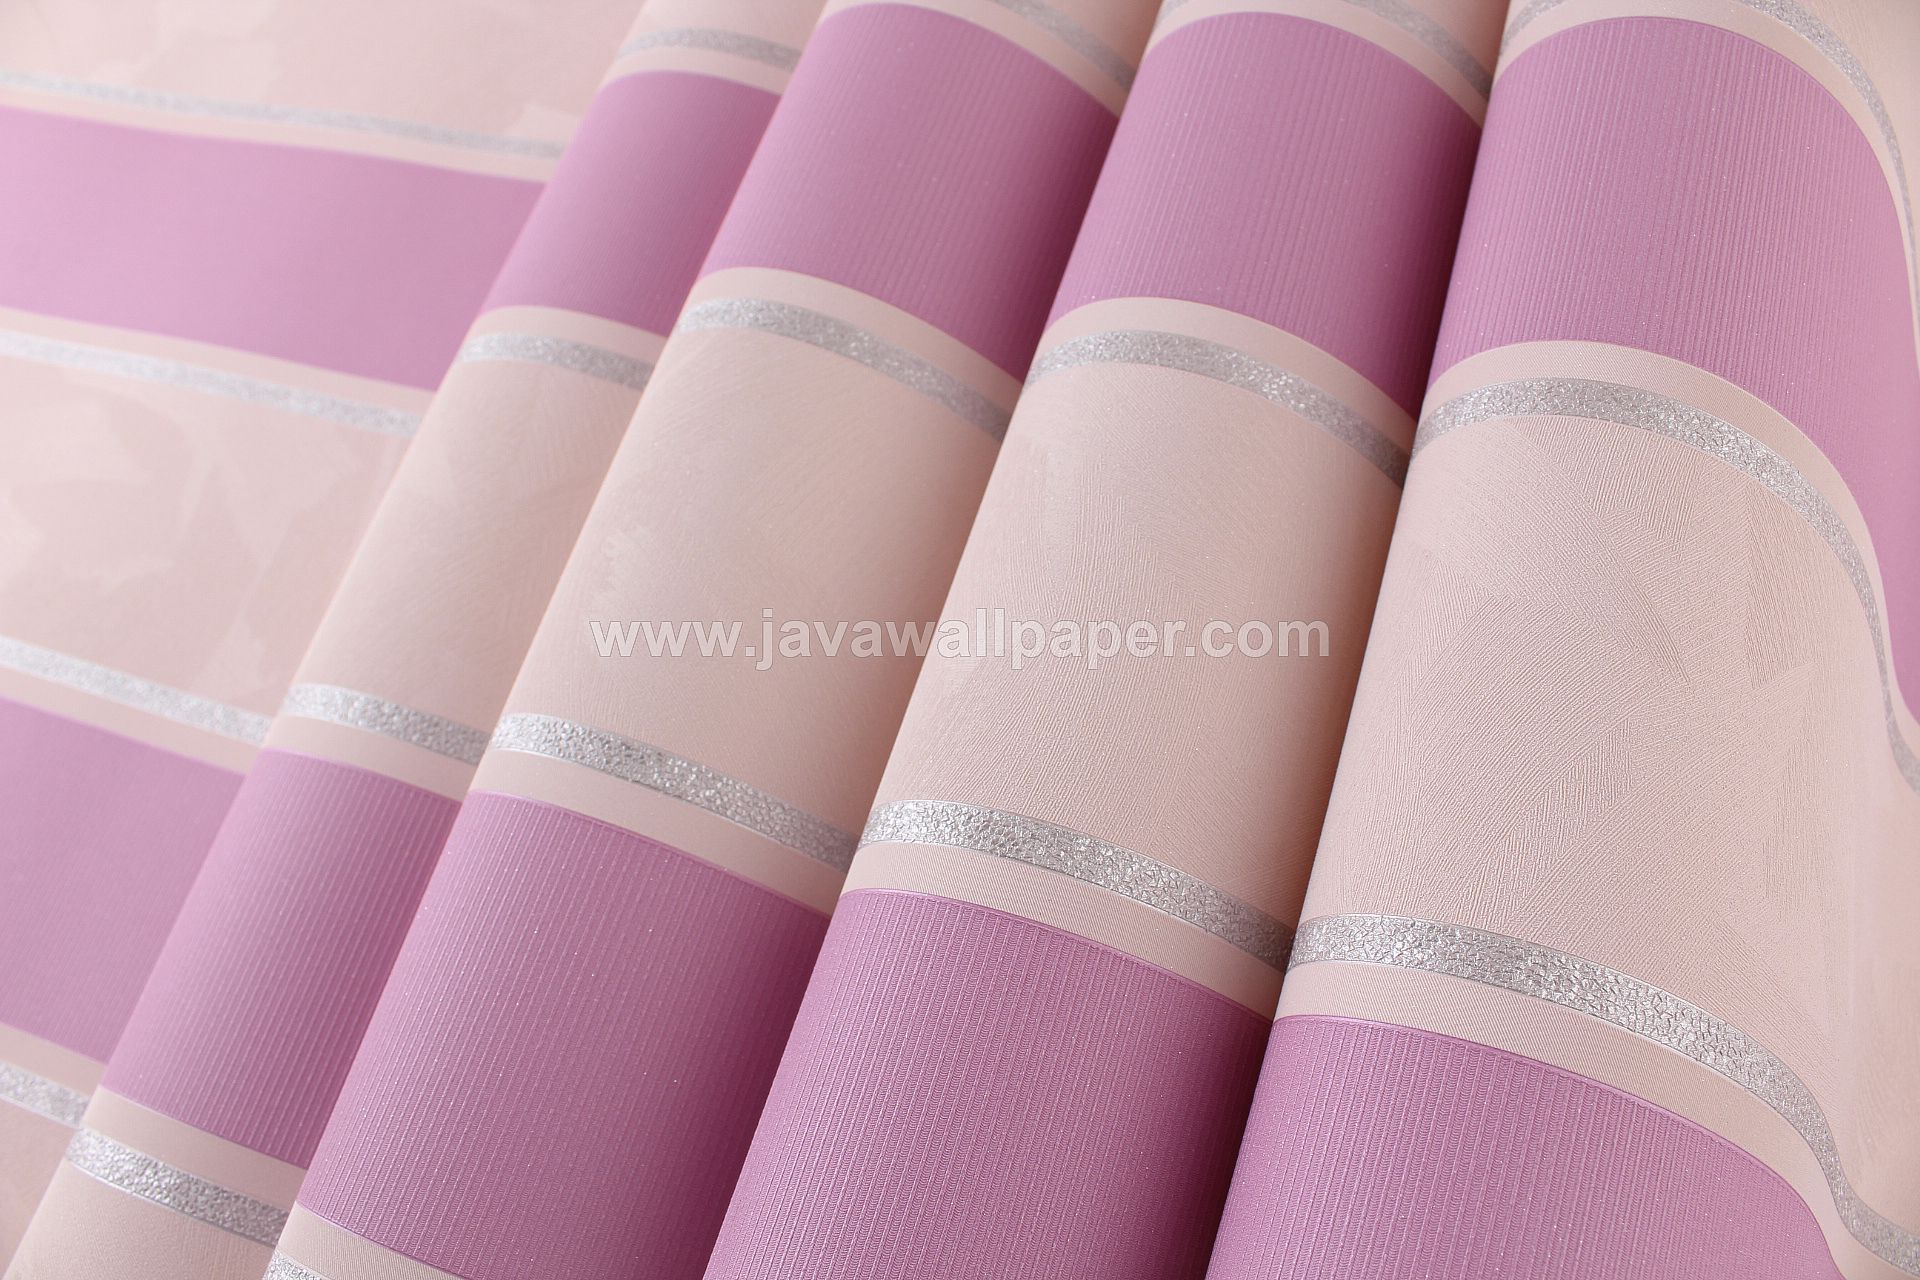 Wallpaper Dinding Garis Pink Ungu CL D2830-10 - Java Wallpaper